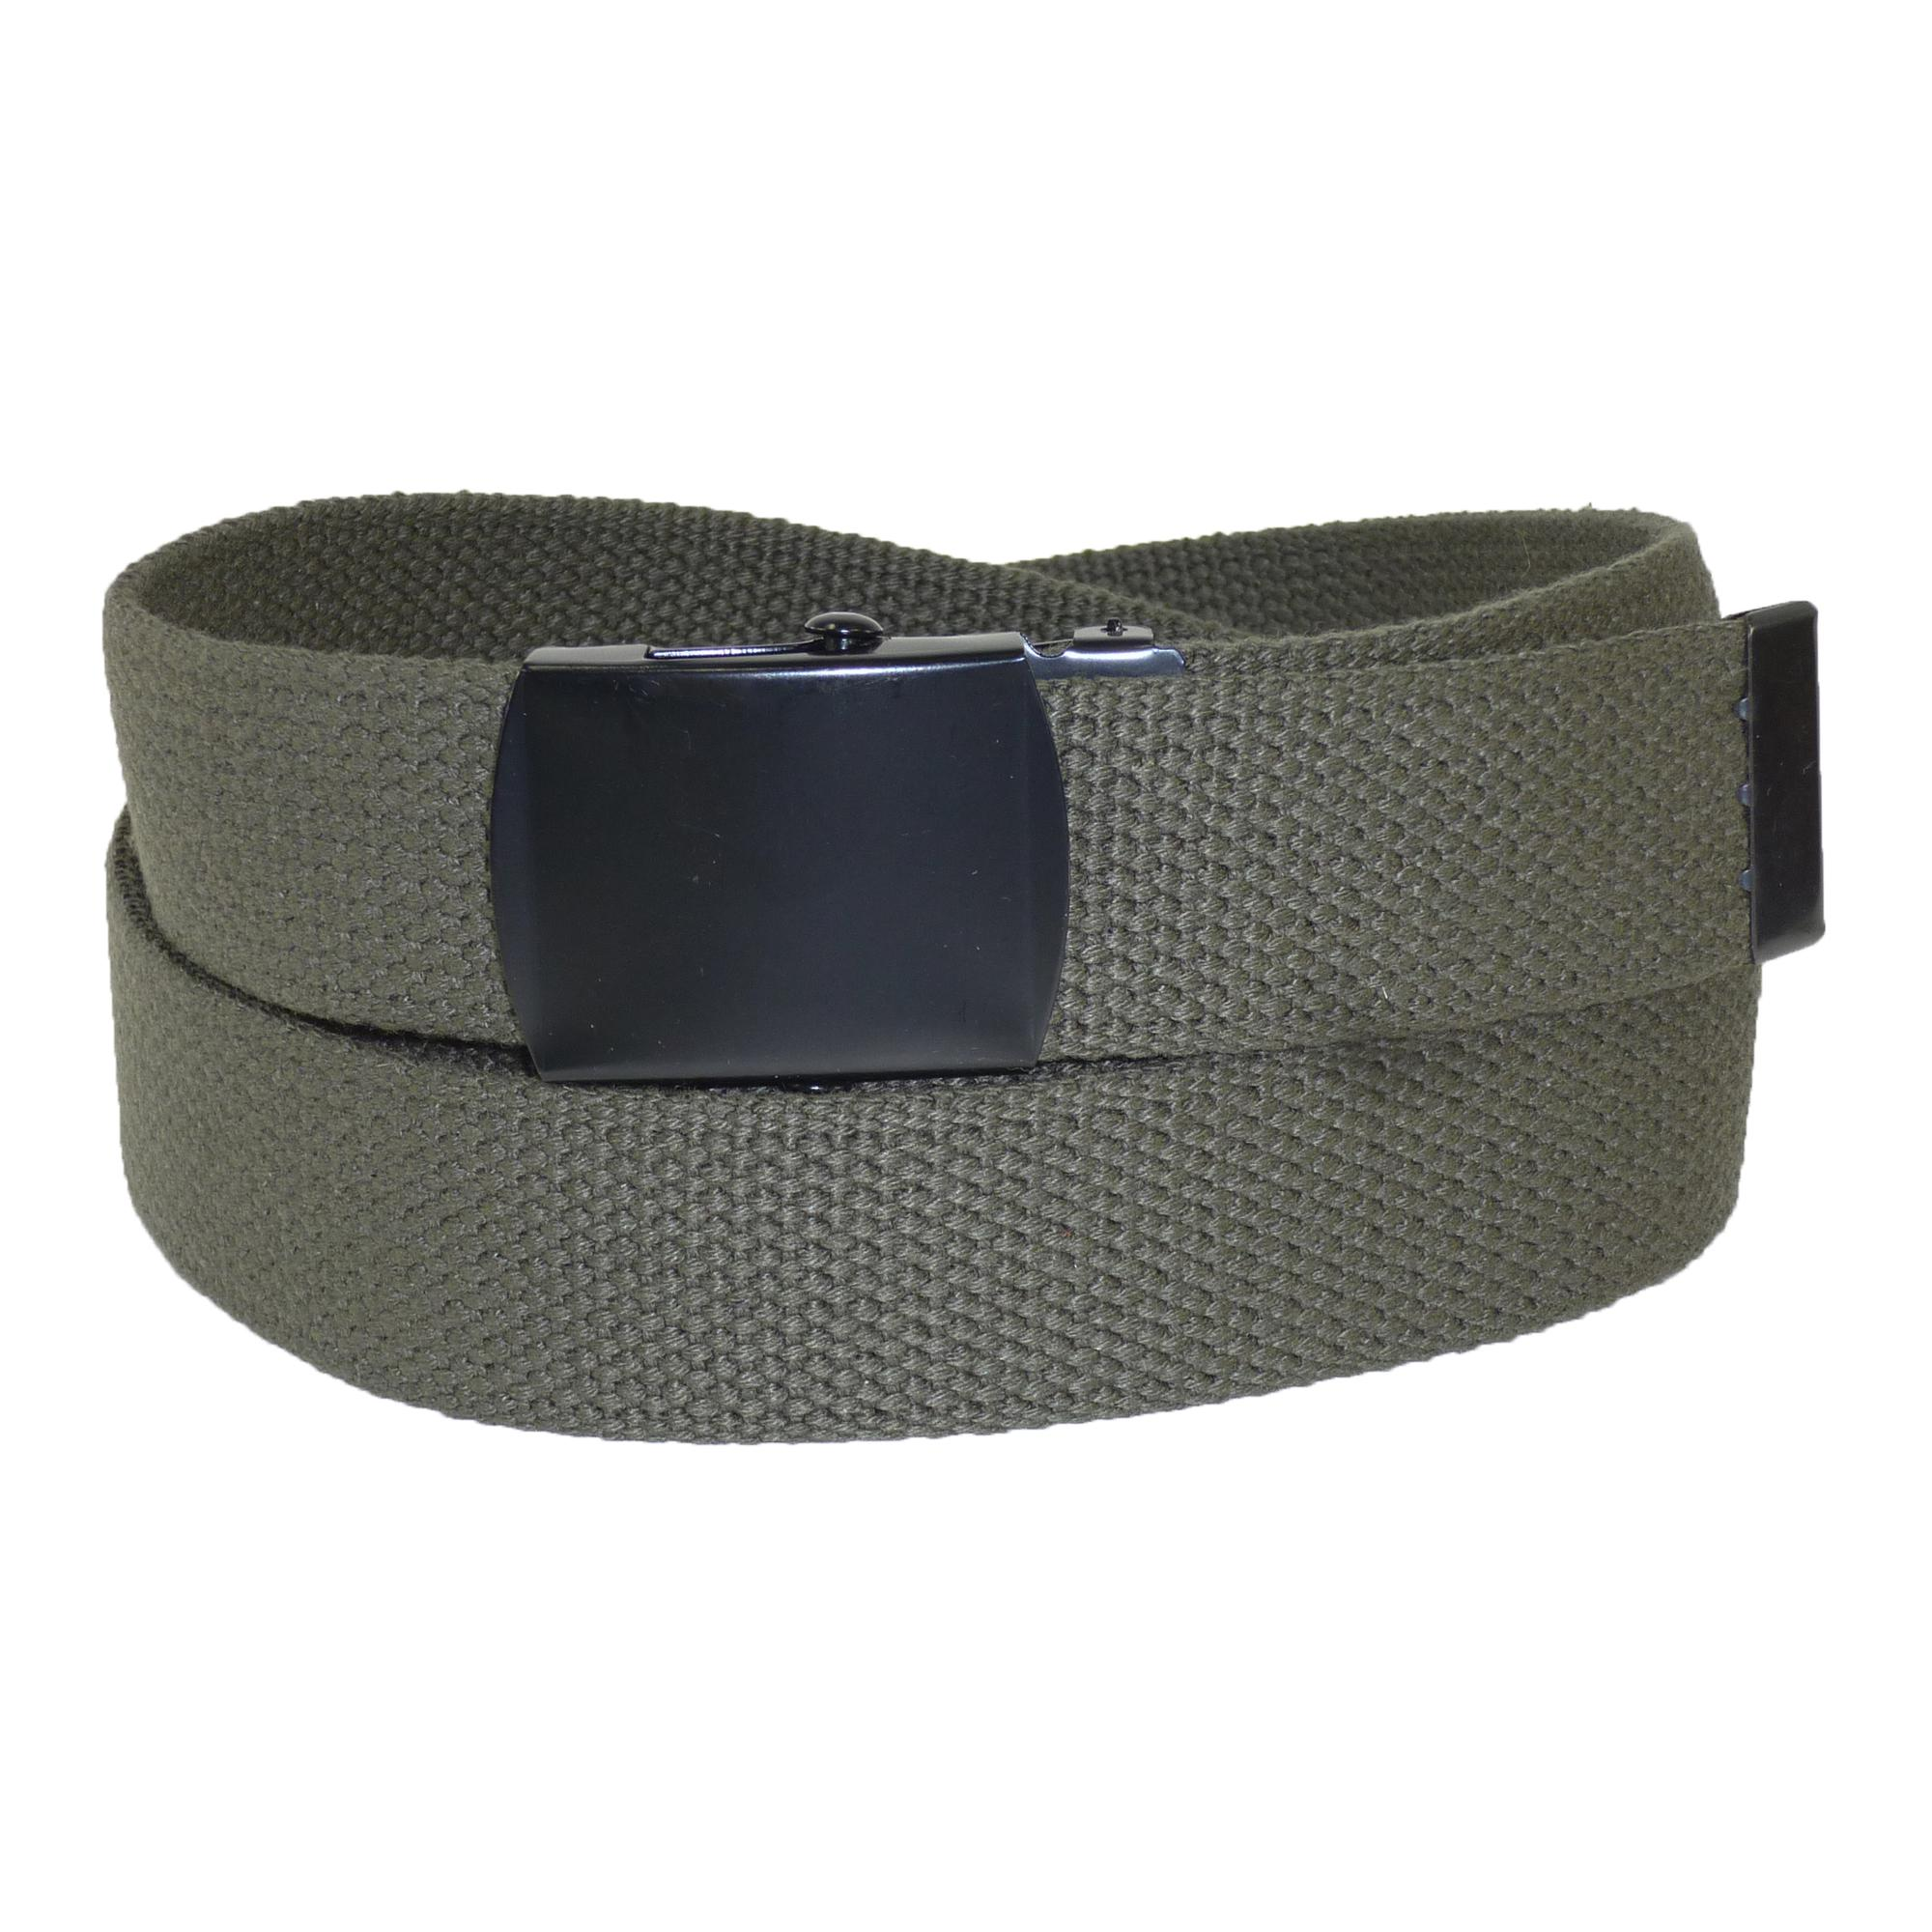 CTM Fabric Big & Tall Adjustable Belt with Black Buckle - image 1 de 1